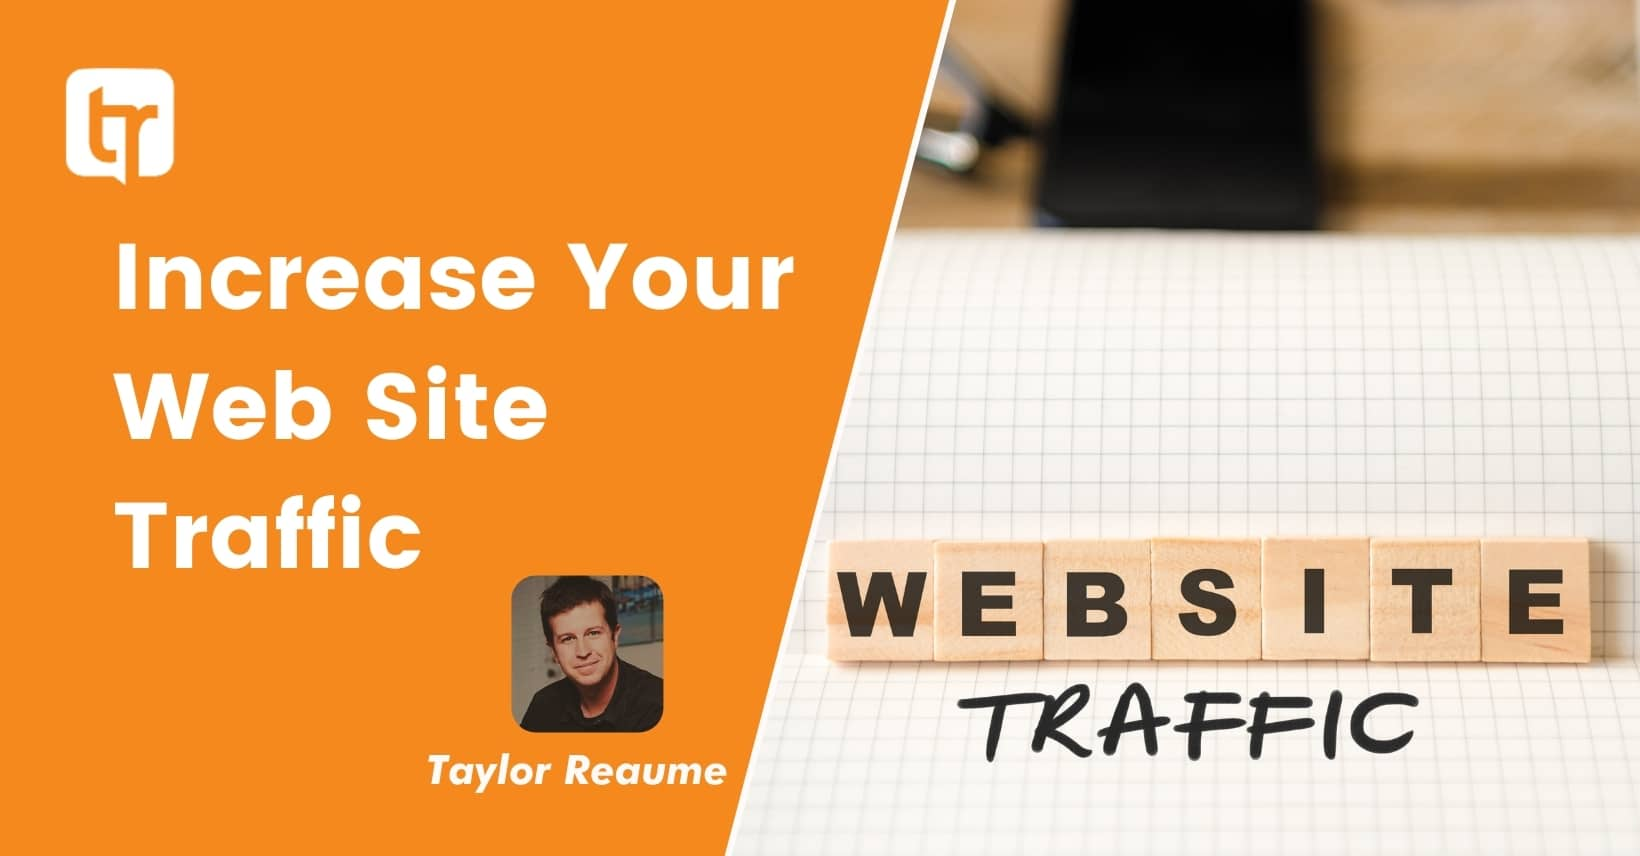 Increase Web Site Traffic with SearchEnginePros.com